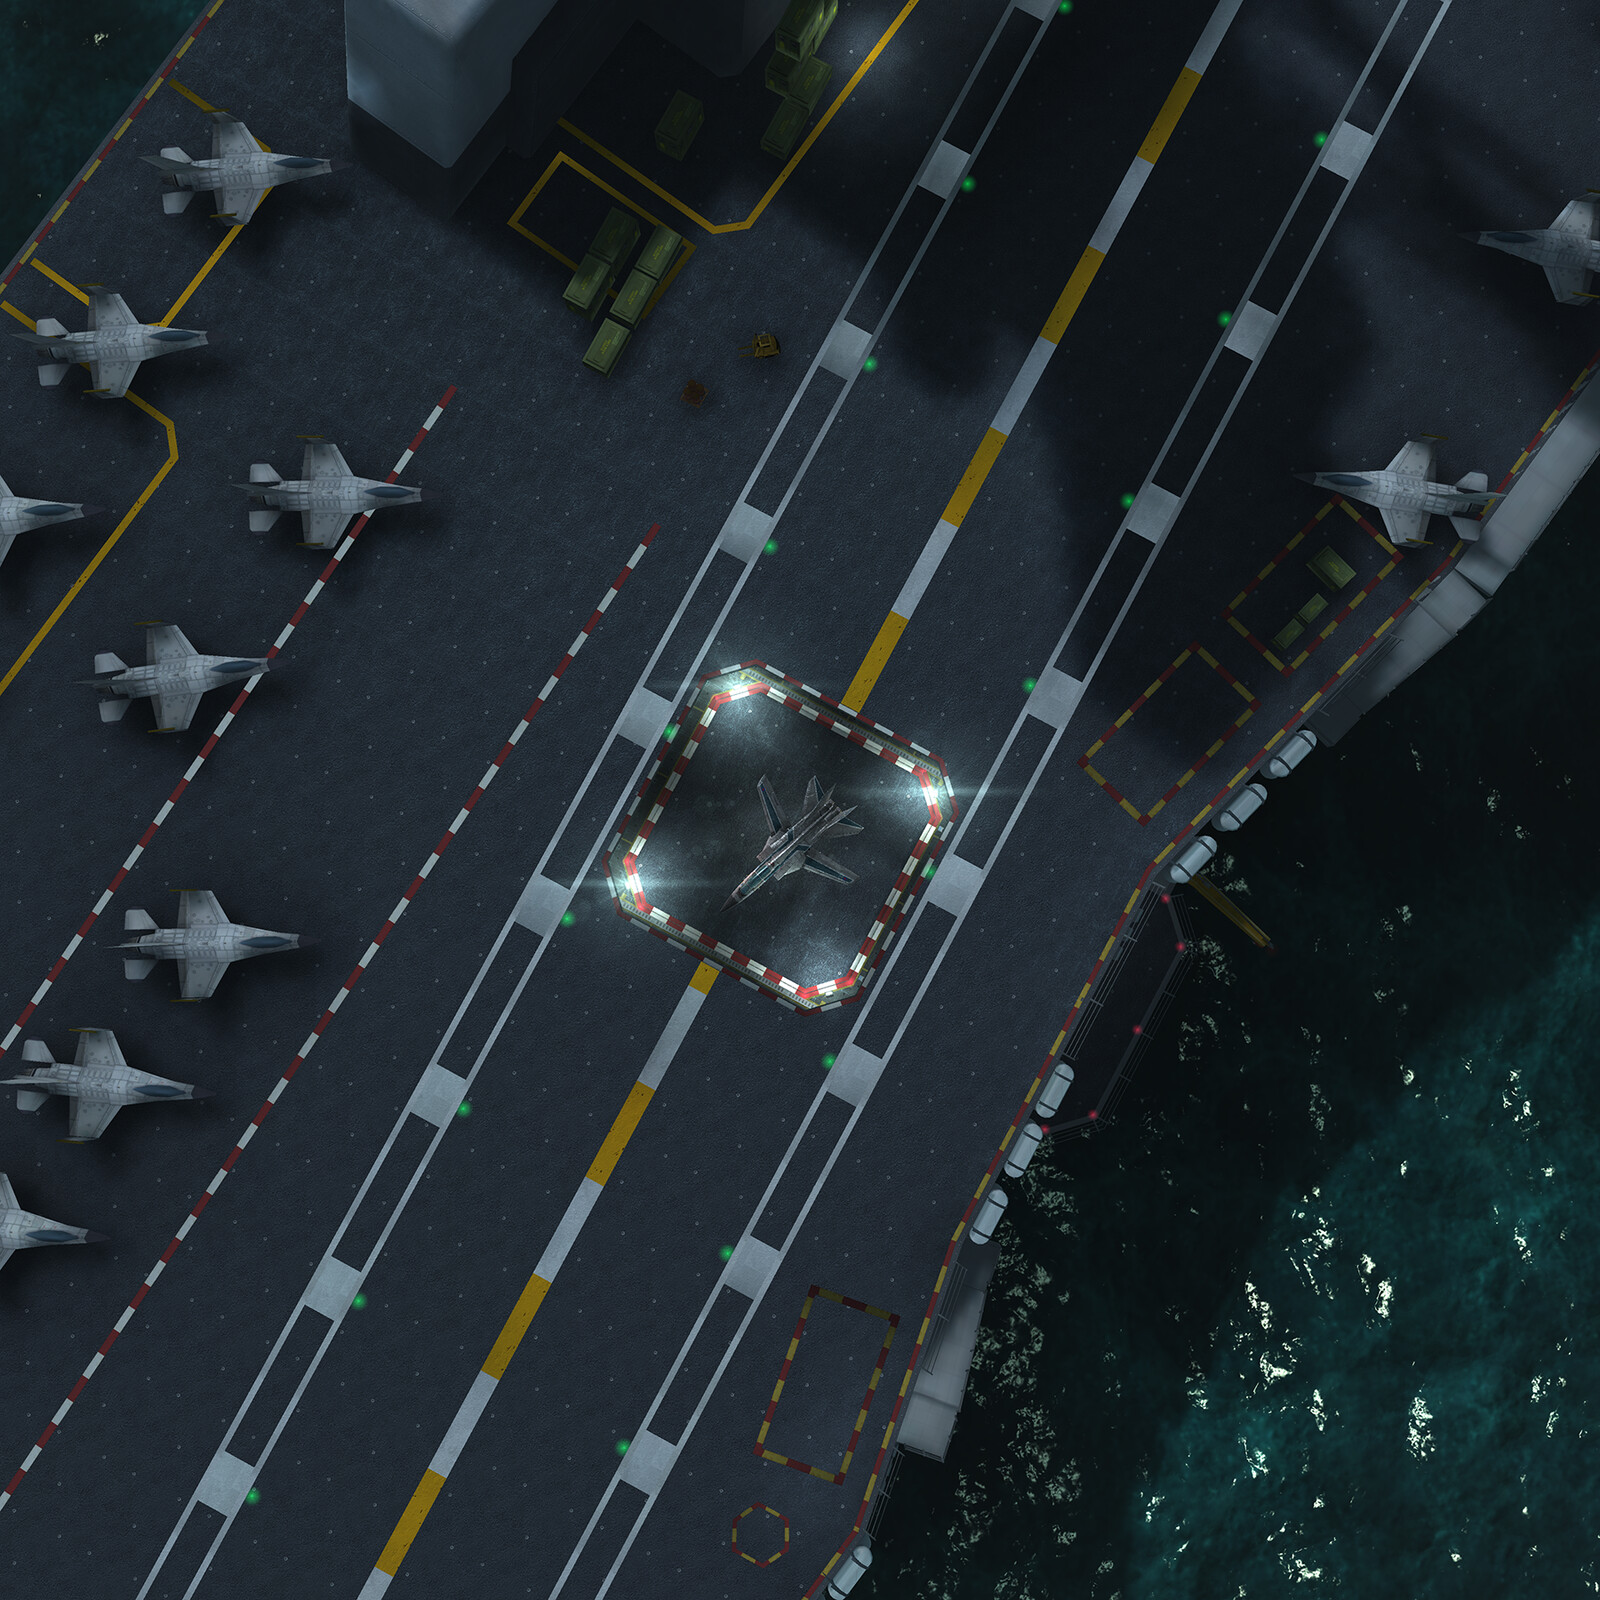 Aircraft carrier deck.